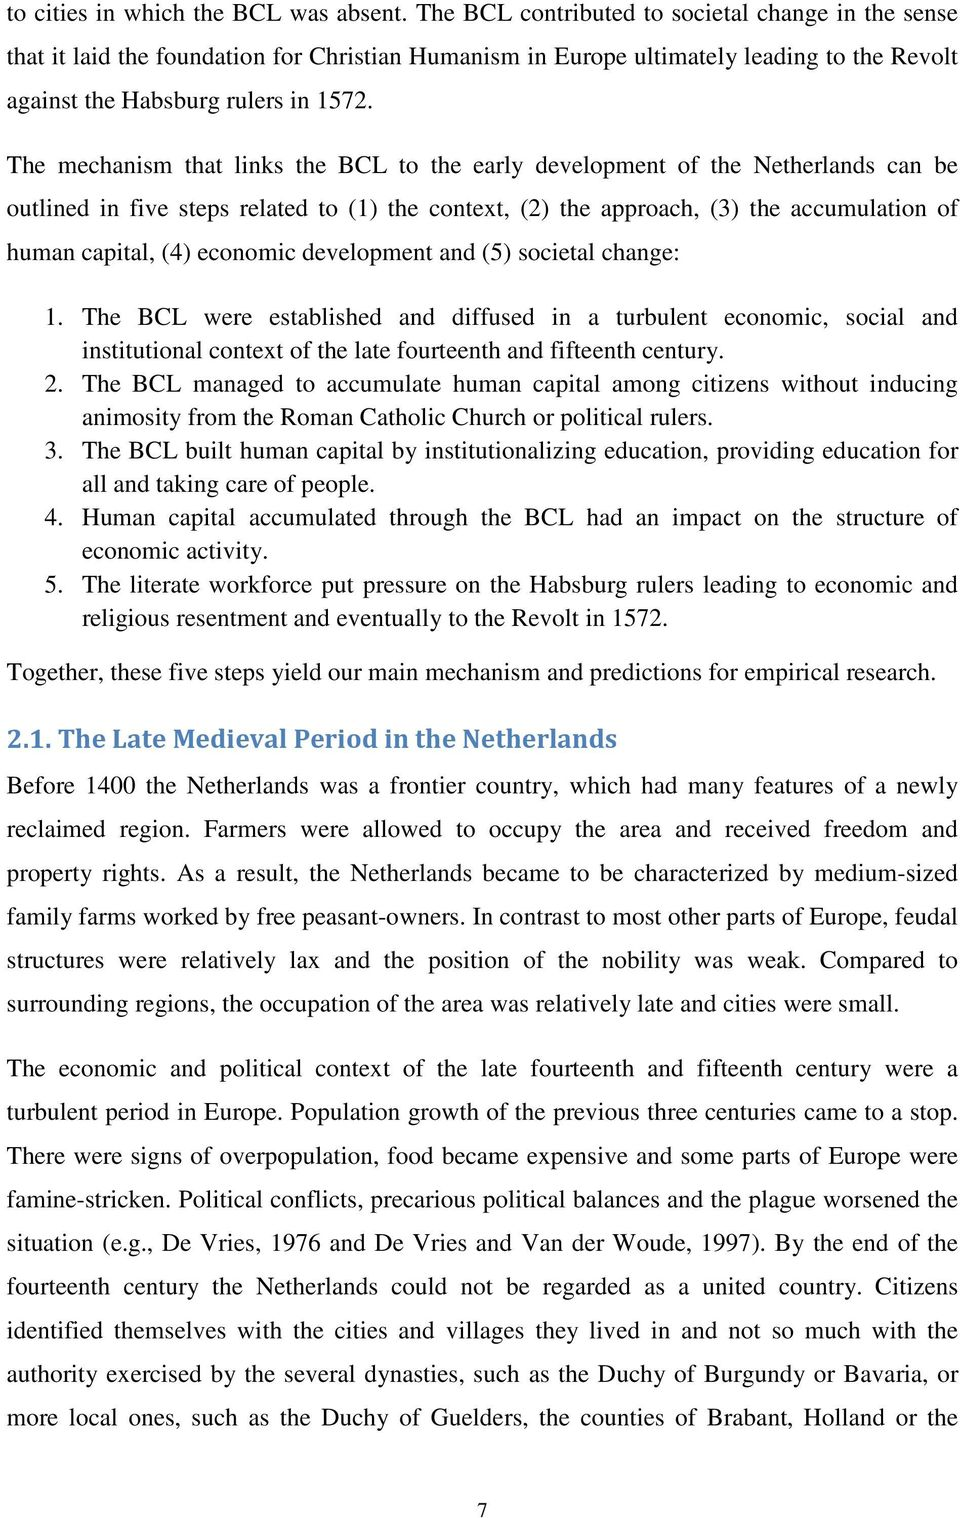 The mechanism that links the BCL to the early development of the Netherlands can be outlined in five steps related to (1) the context, (2) the approach, (3) the accumulation of human capital, (4)